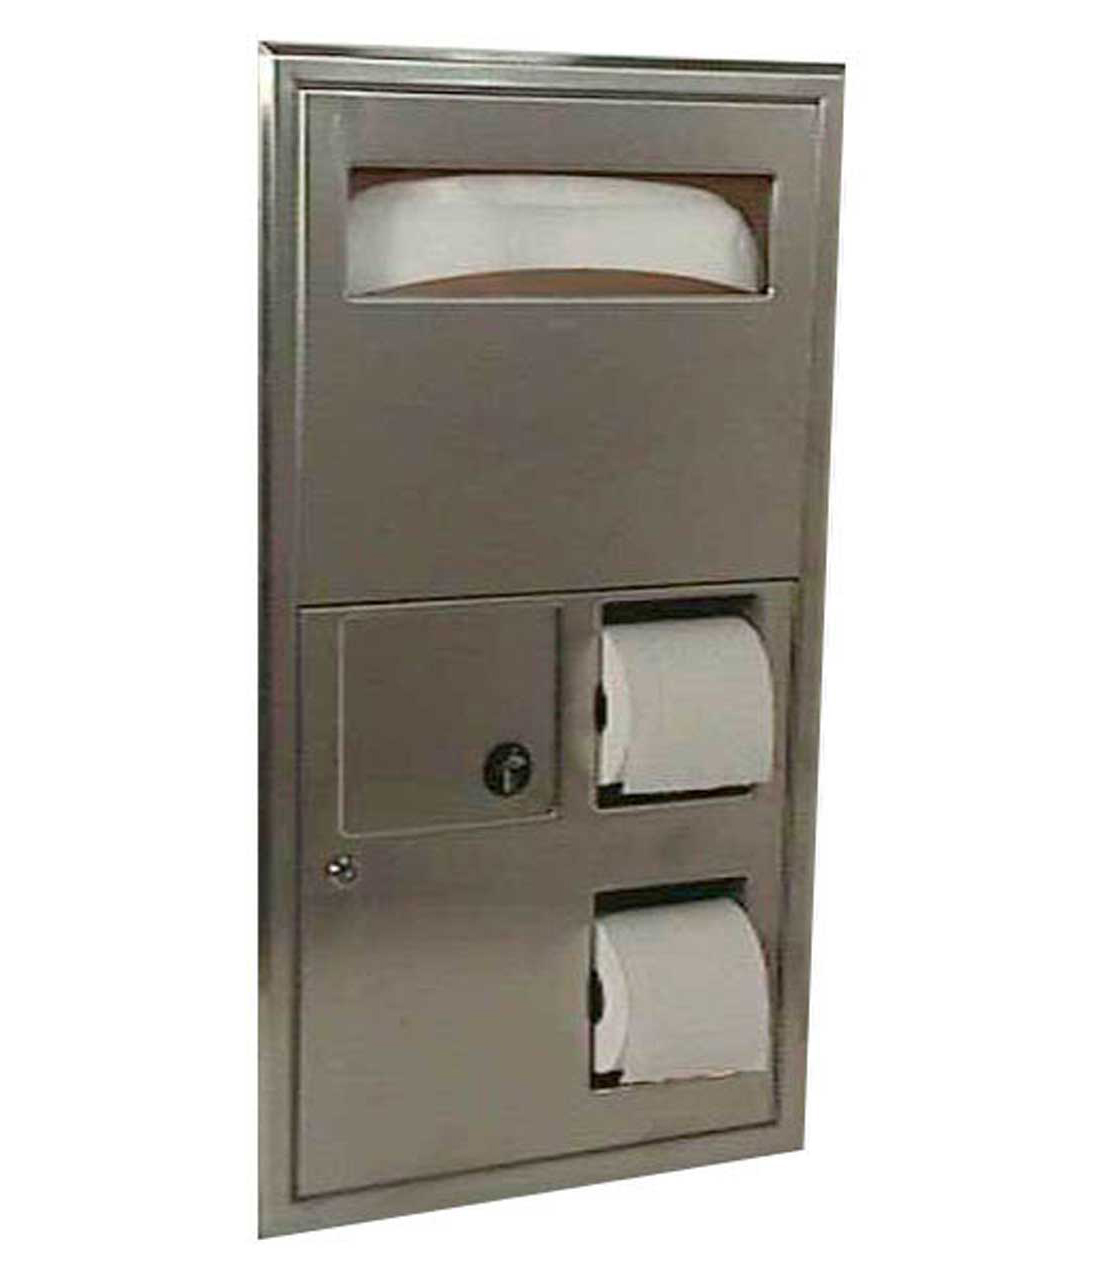 Outstanding Bobrick B 3574 Classicseries Recessed Sanitary Napkin Disposal Seat Cover And Toilet Tissue Dispenser Ncnpc Chair Design For Home Ncnpcorg